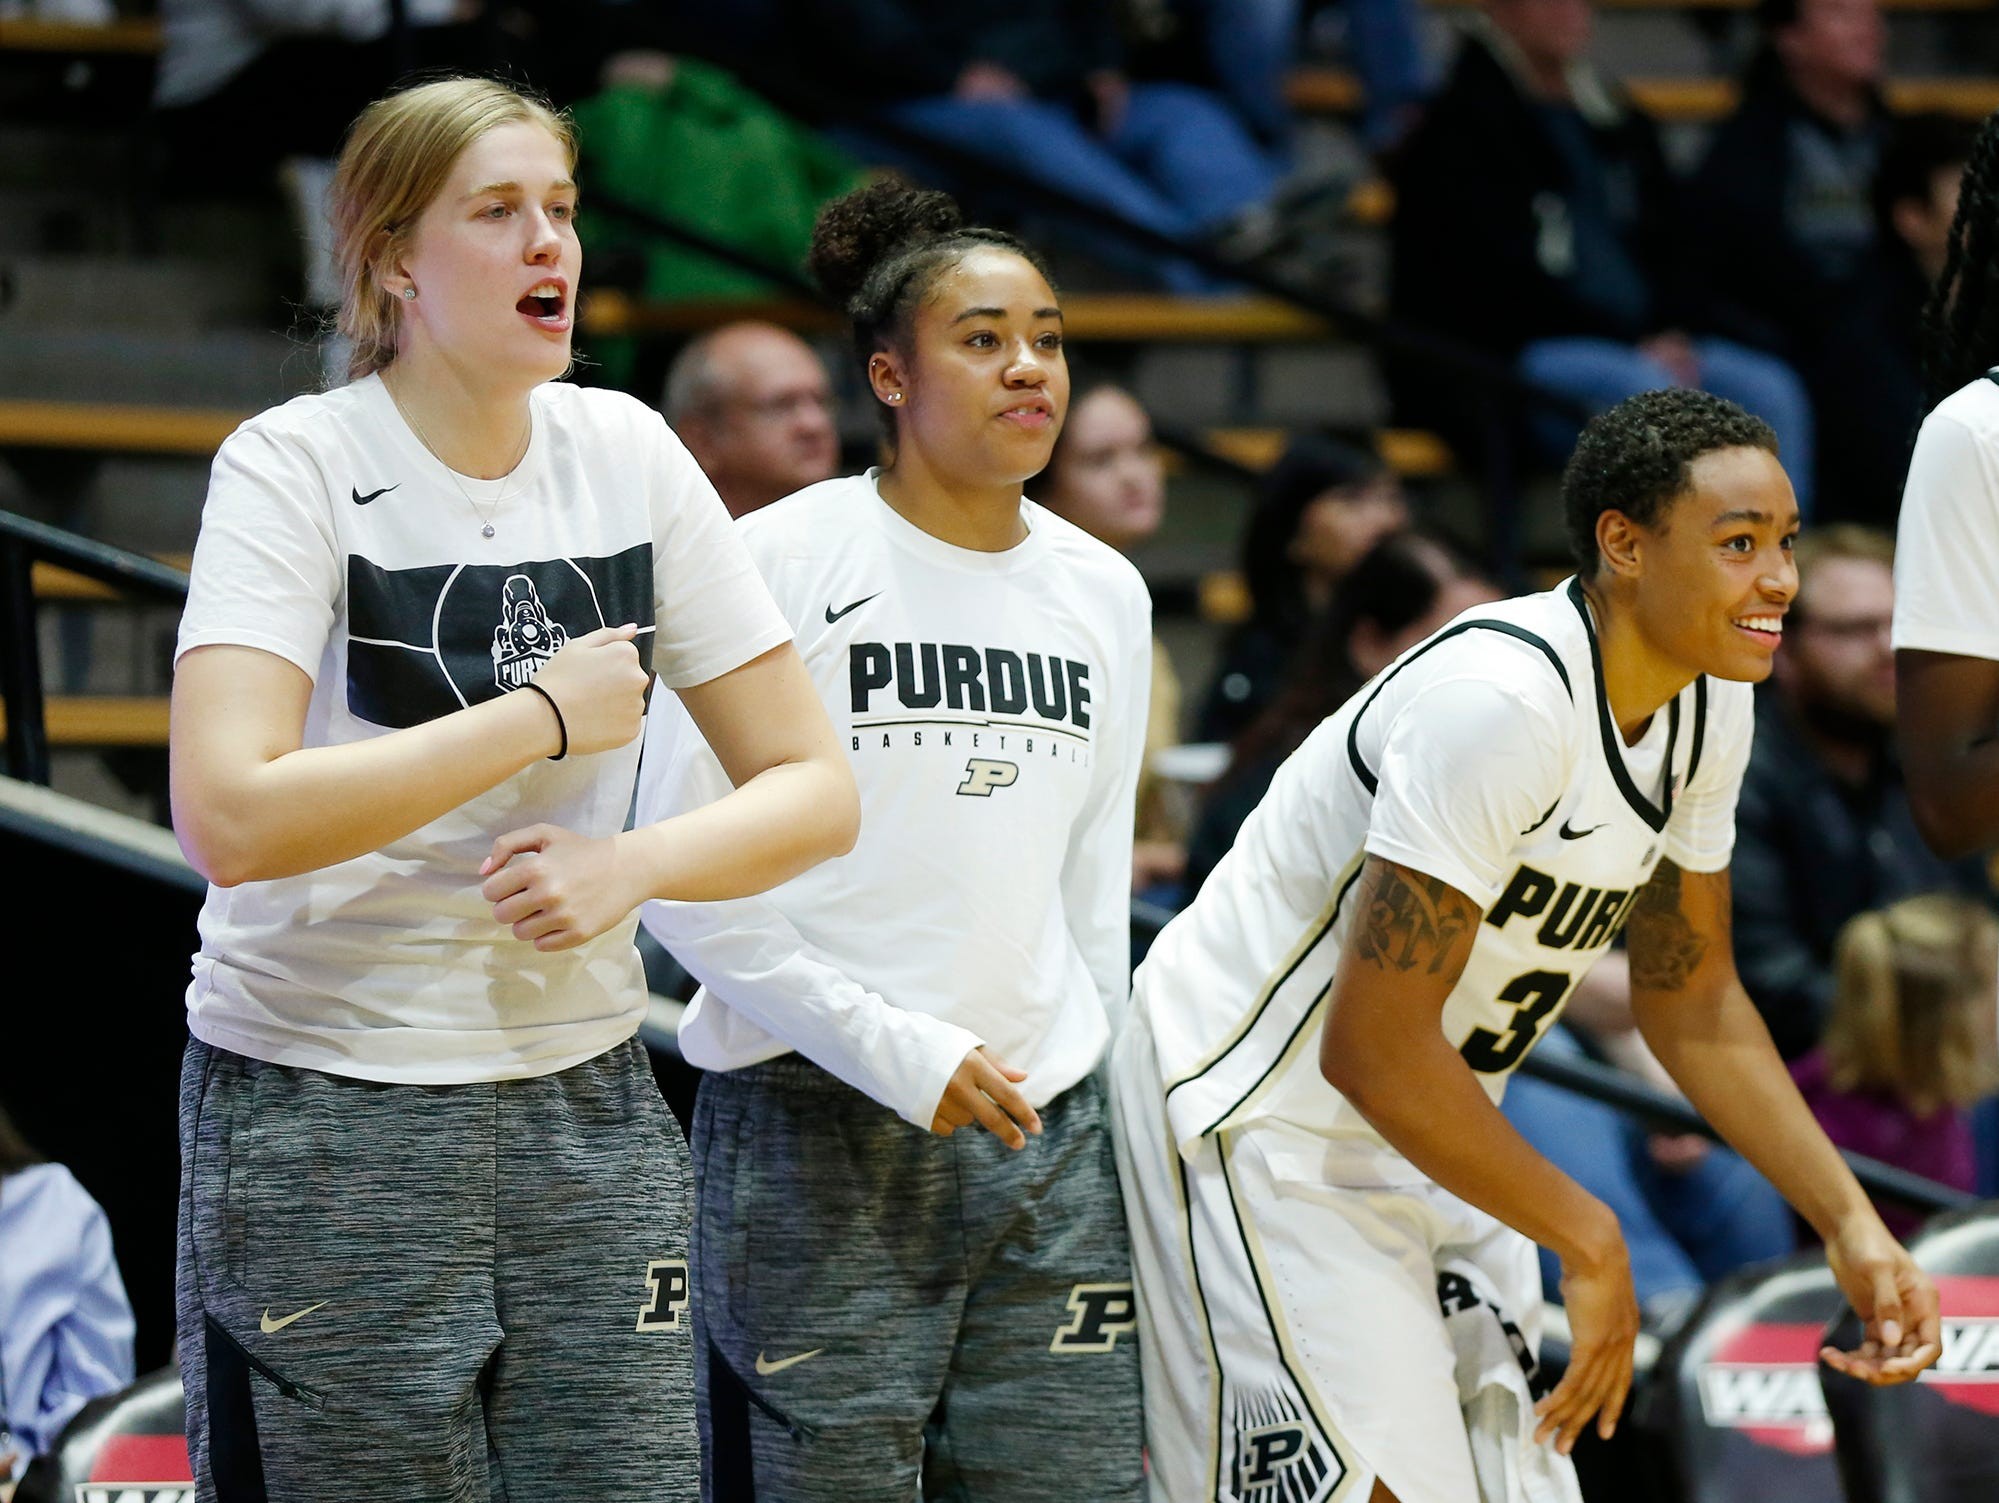 Players on the Purdue bench cheer as the Boilermakers begin to pull away late against Ashland Sunday, November 4, 2018, at Mackey Arena. Purdue defeated Ashland 85-69.